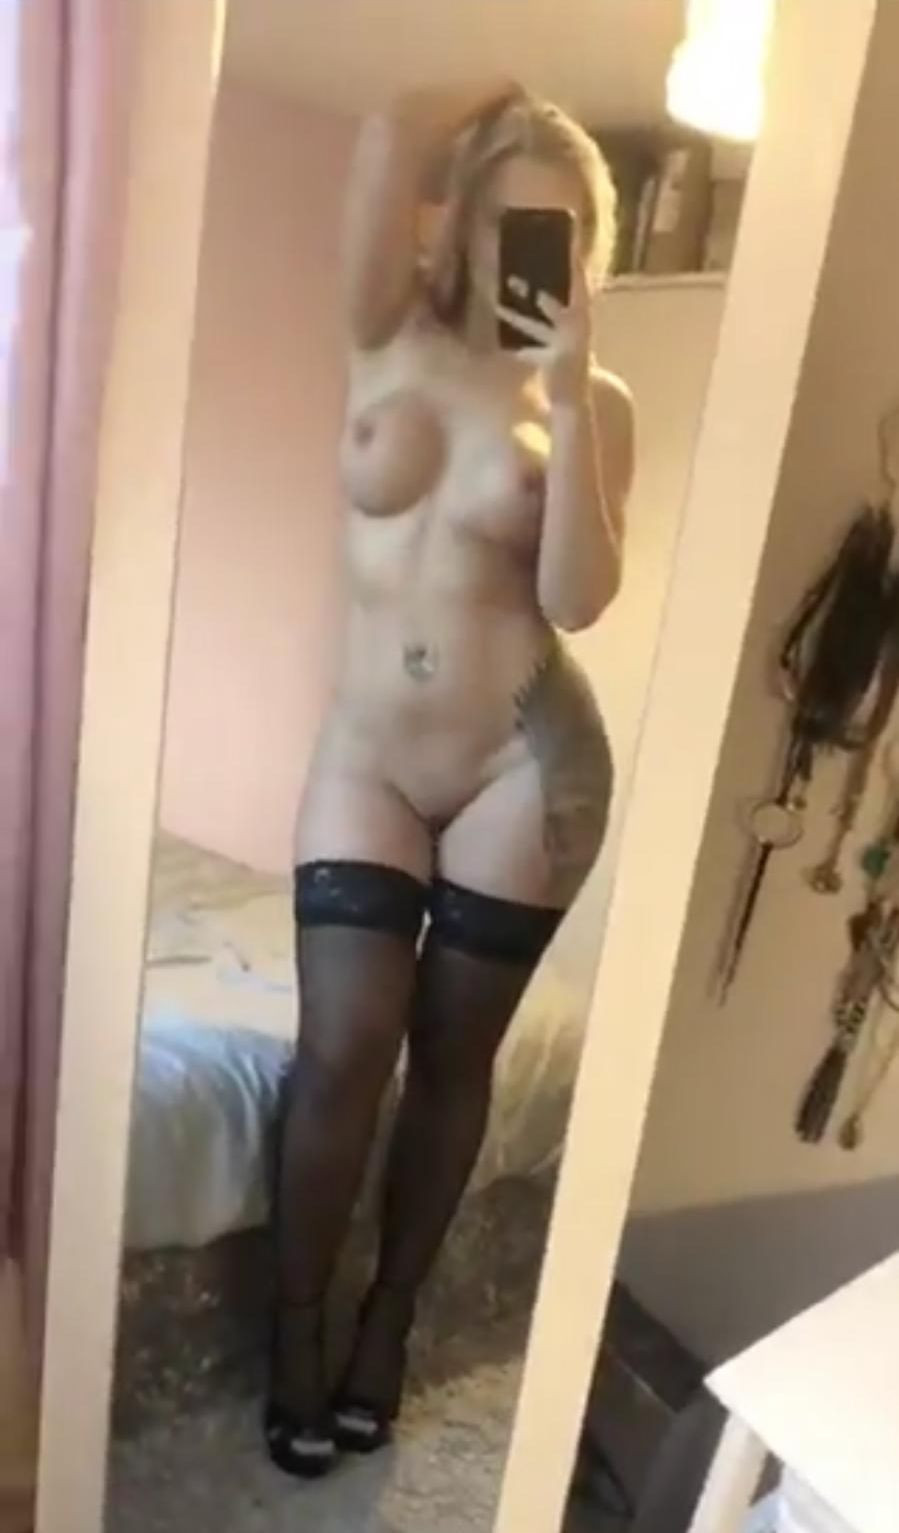 Katie Smith Nude TheFappening.nu 2